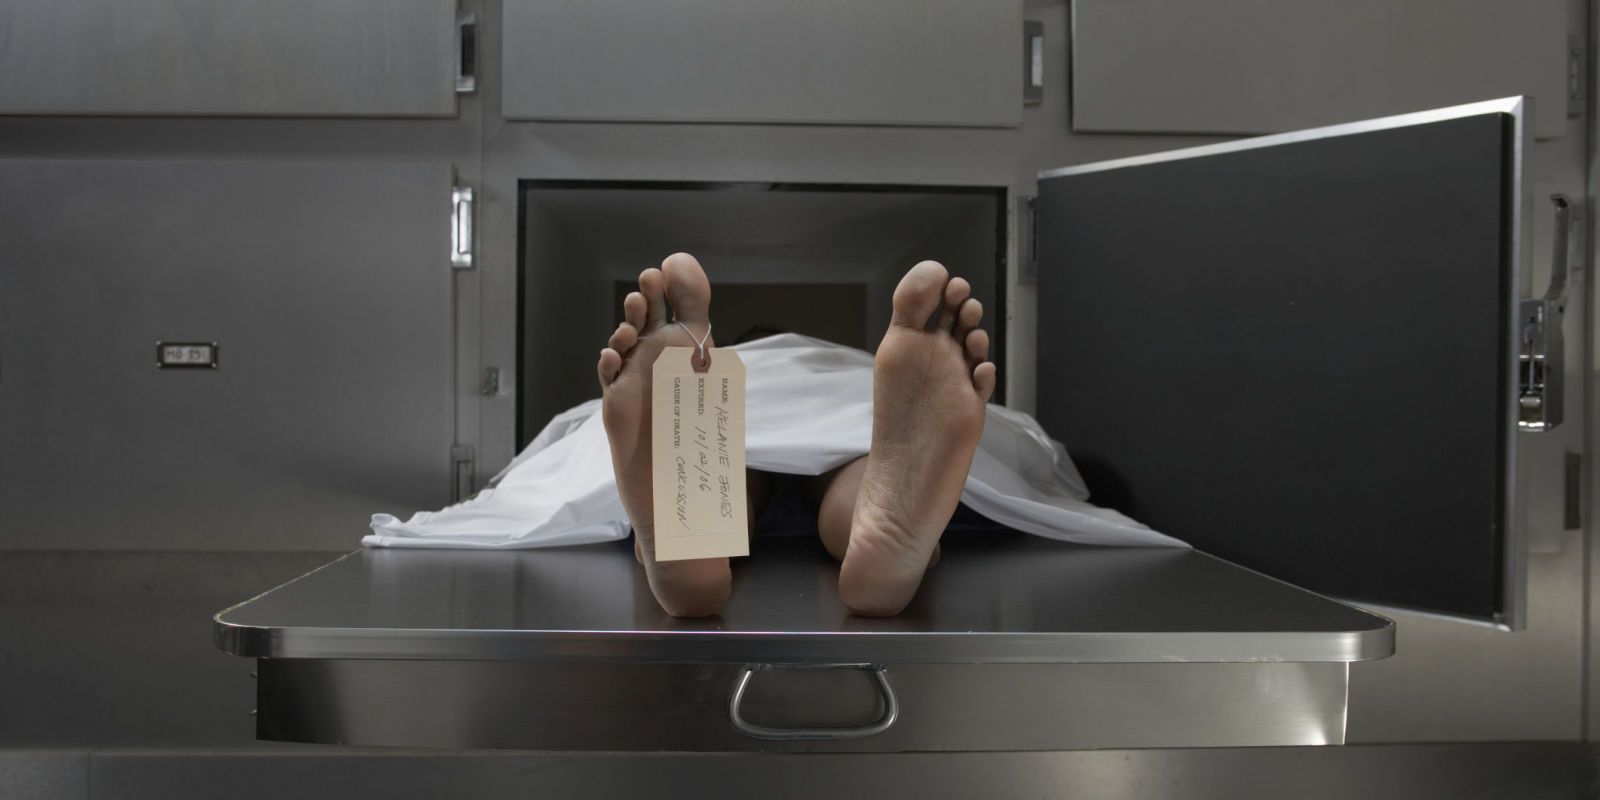 morgue sex Looks Like That Viral Story About the Russian Man Who Woke Up In A Morgue  Is a Hoax